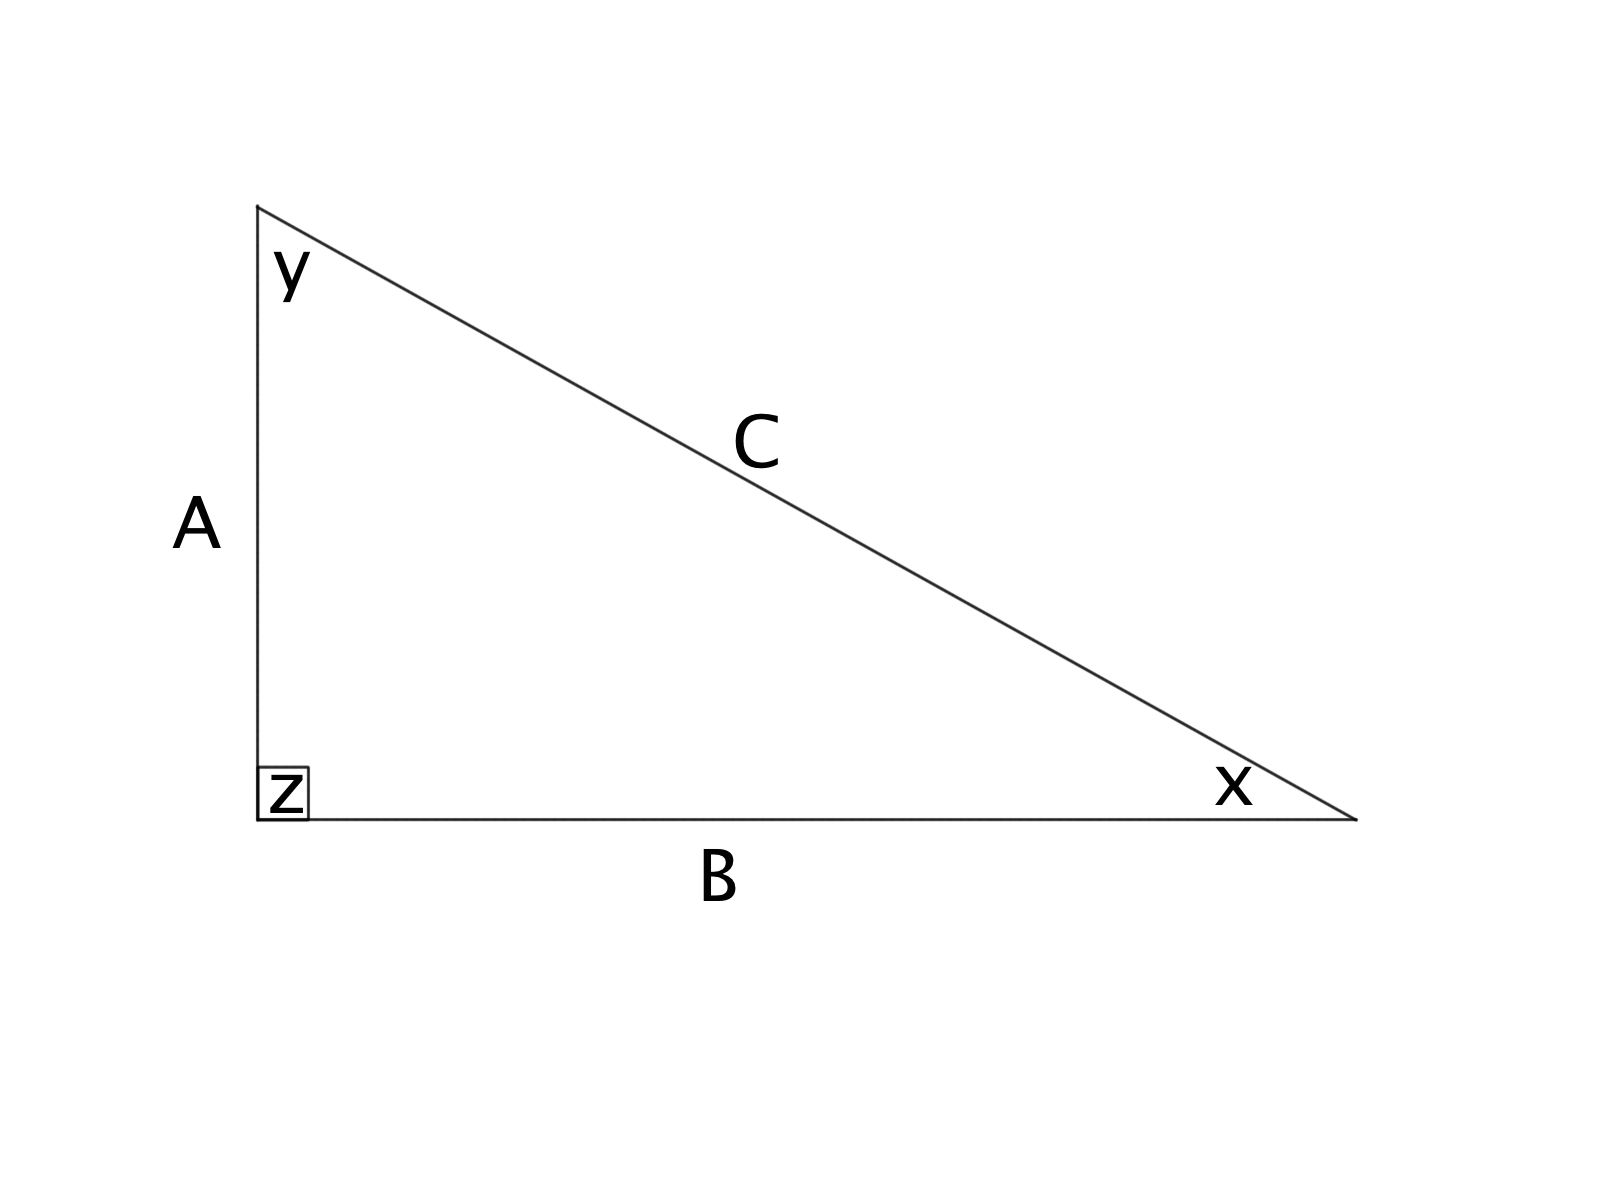 How to find the area of a right triangle - Basic Geometry